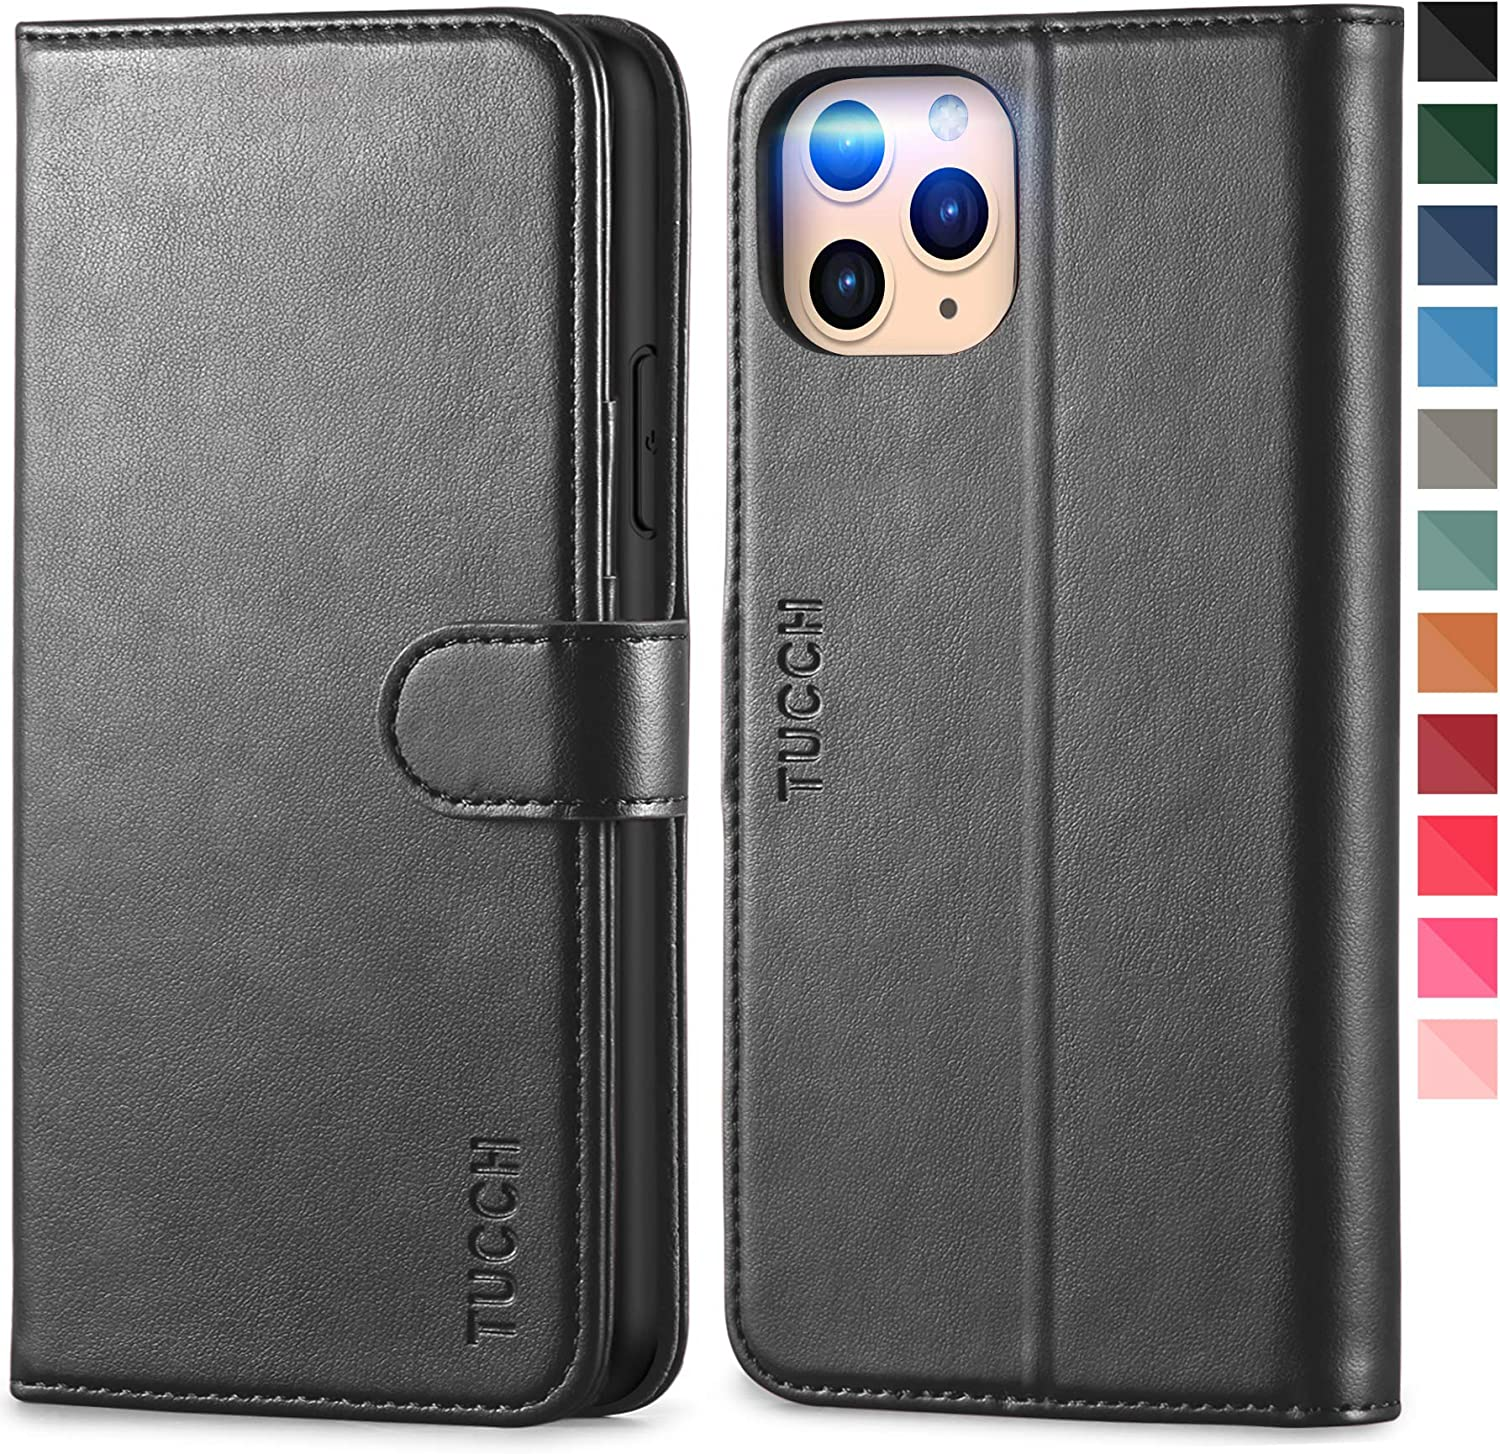 Cover for Leather Mobile Phone Cover Kickstand Card Holders Extra-Shockproof Business Flip Cover iPhone 11 Pro Max Flip Case